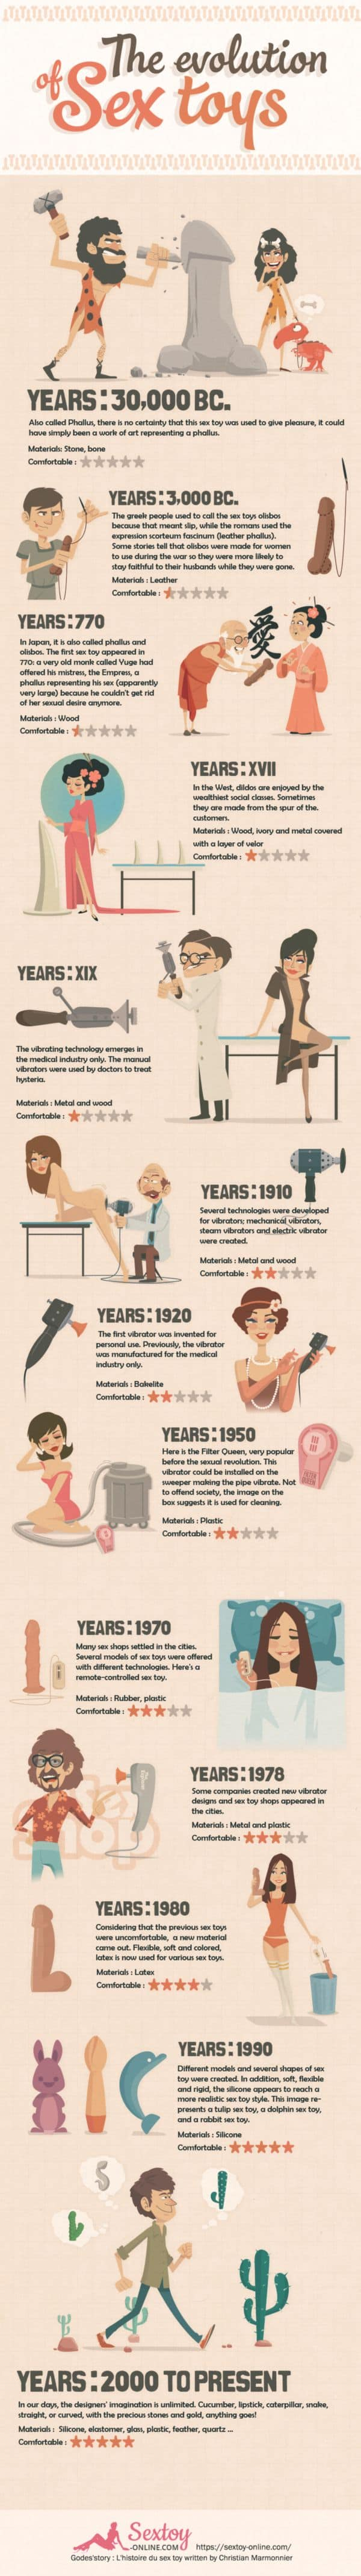 The Evolution of Sextoys